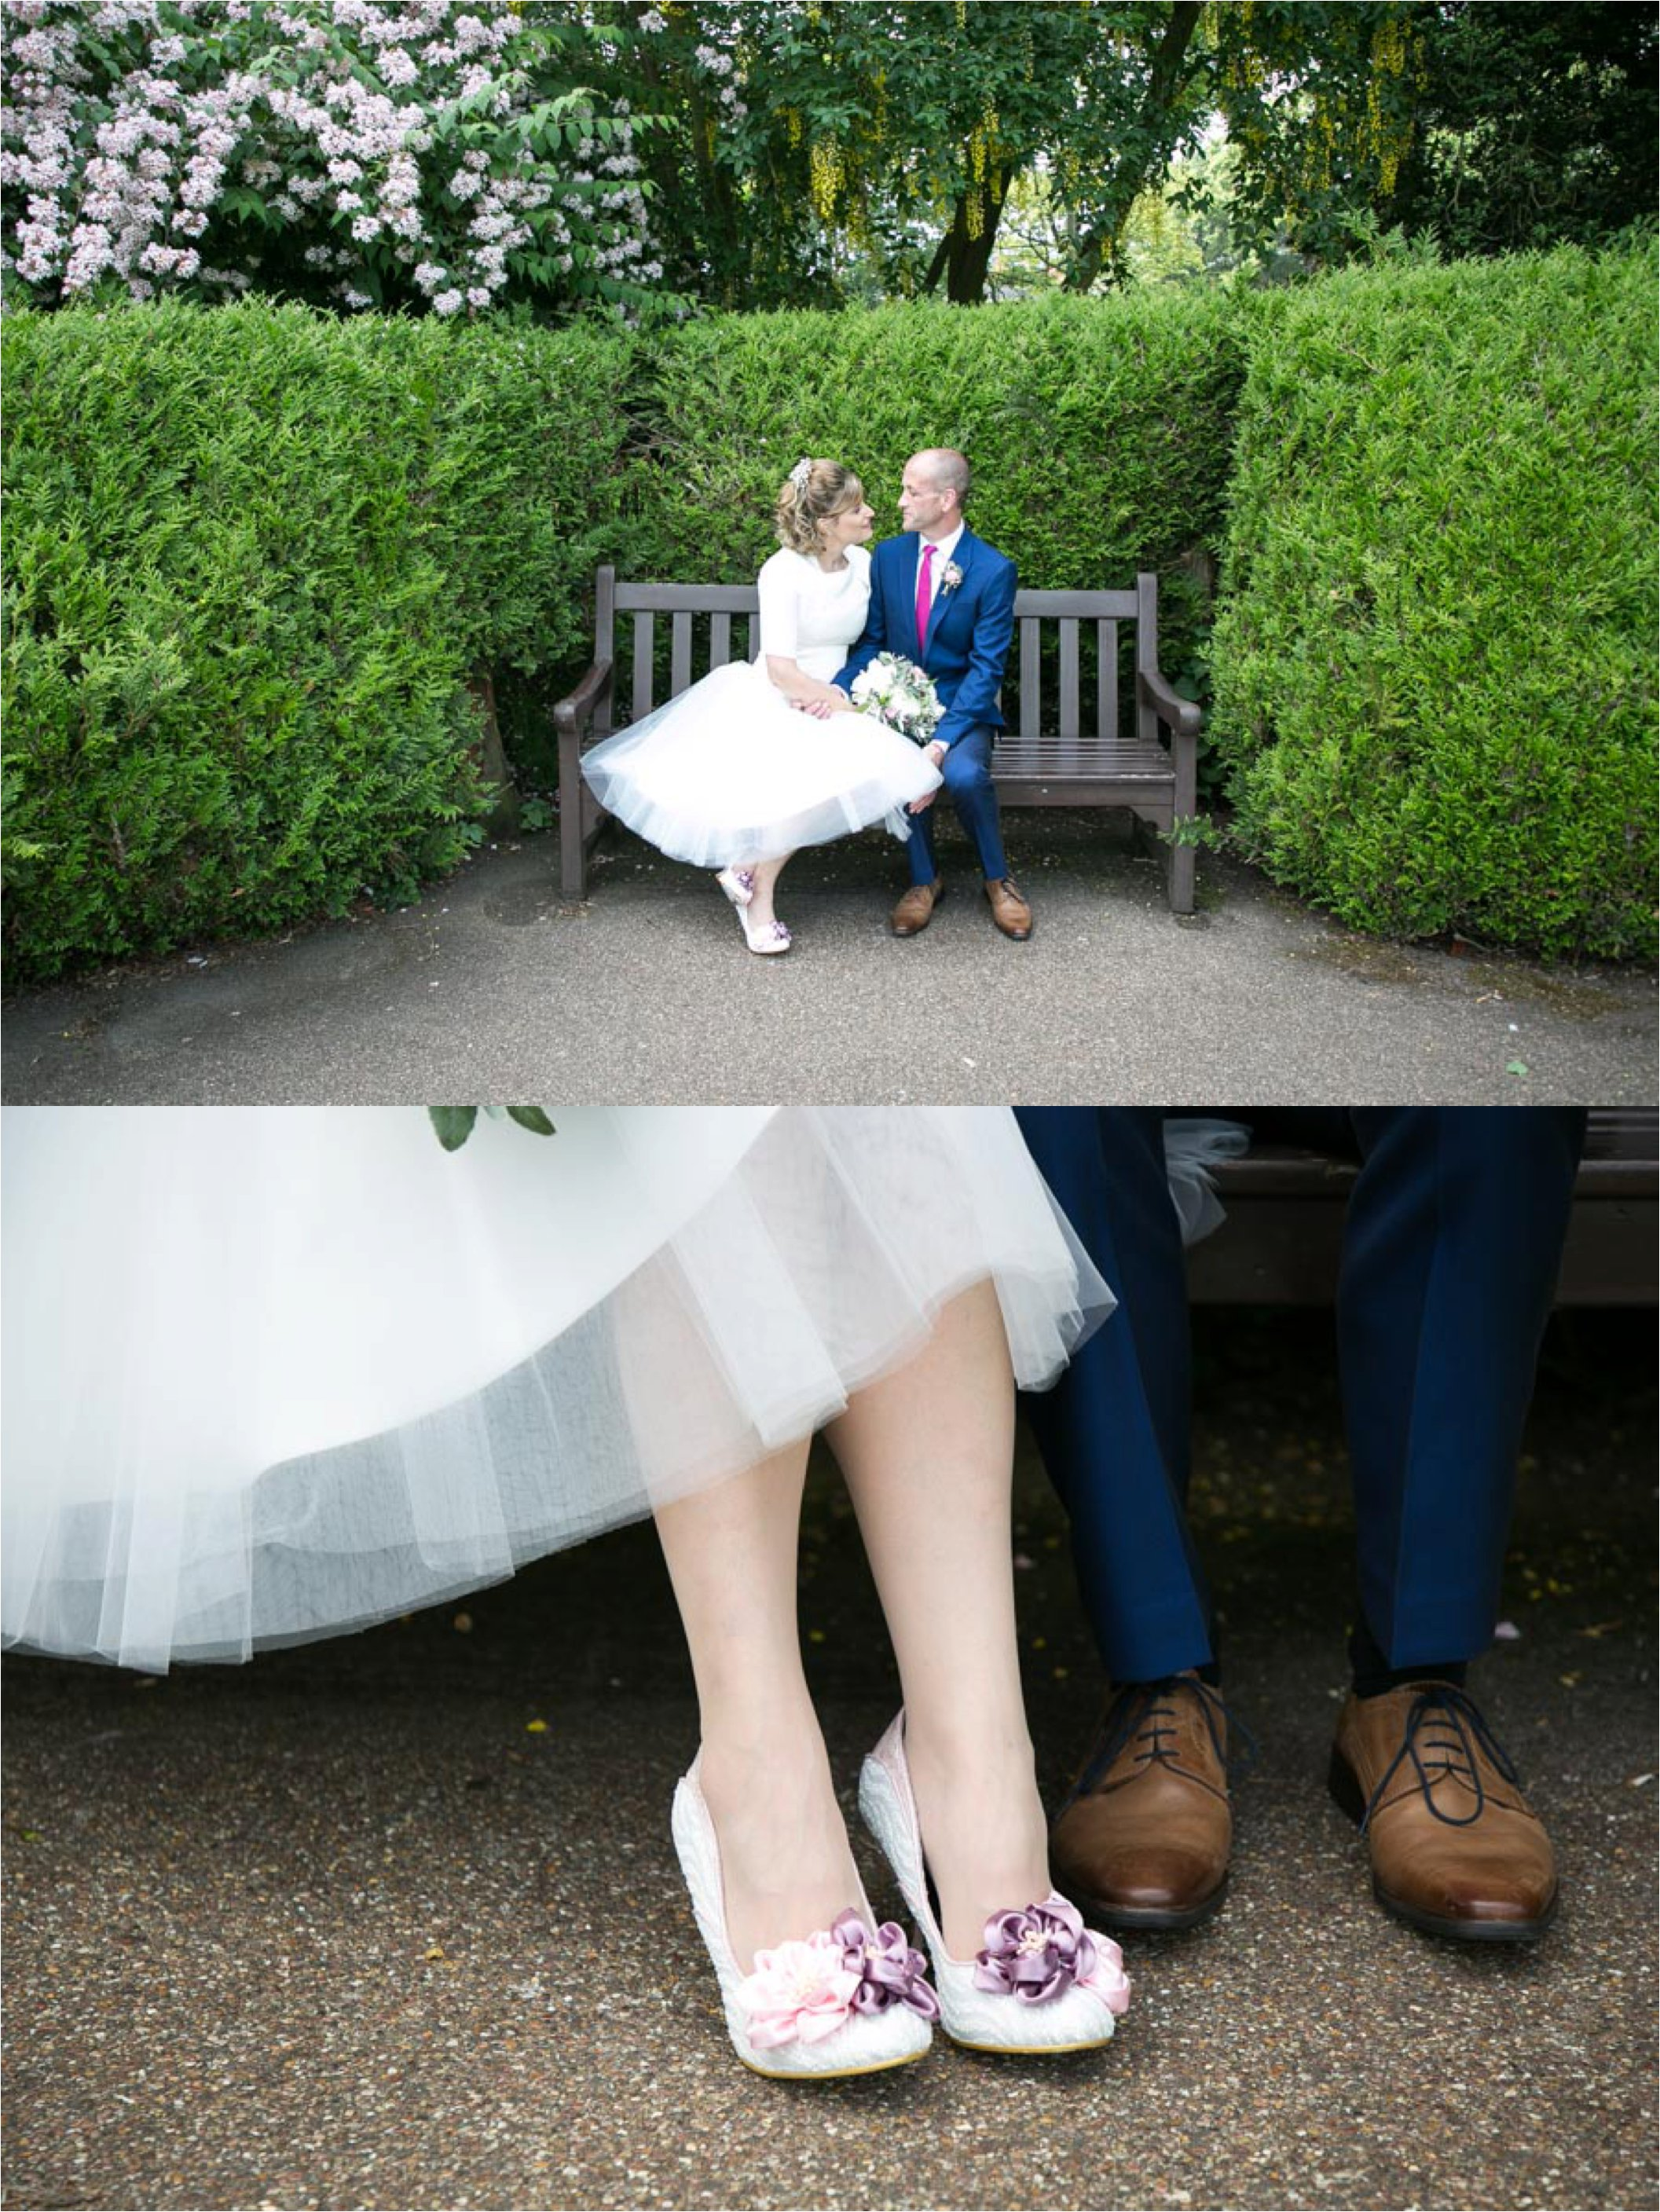 Abbey Gardens wedding photography, Bury St Edmunds. 50's themes wedding